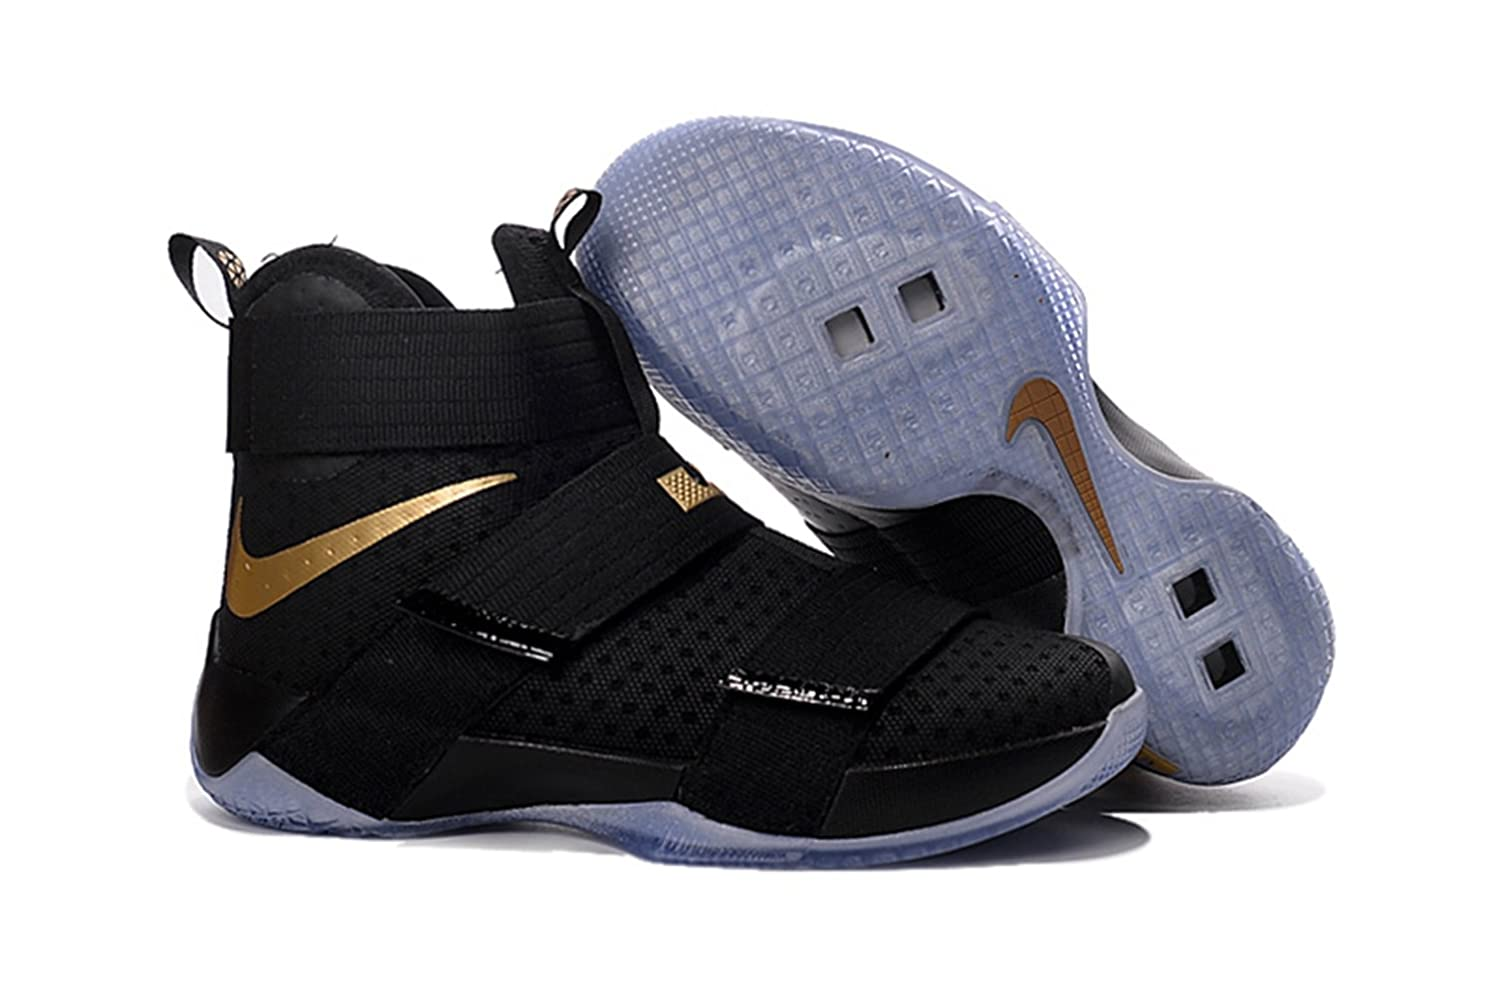 89d686394047f ... red basketball shoes 50b77 d0f28  discount pluralgirl mens lebron  soldier 10 ep basketball shoes black gold 8 amazon. aa4a1 61ac3